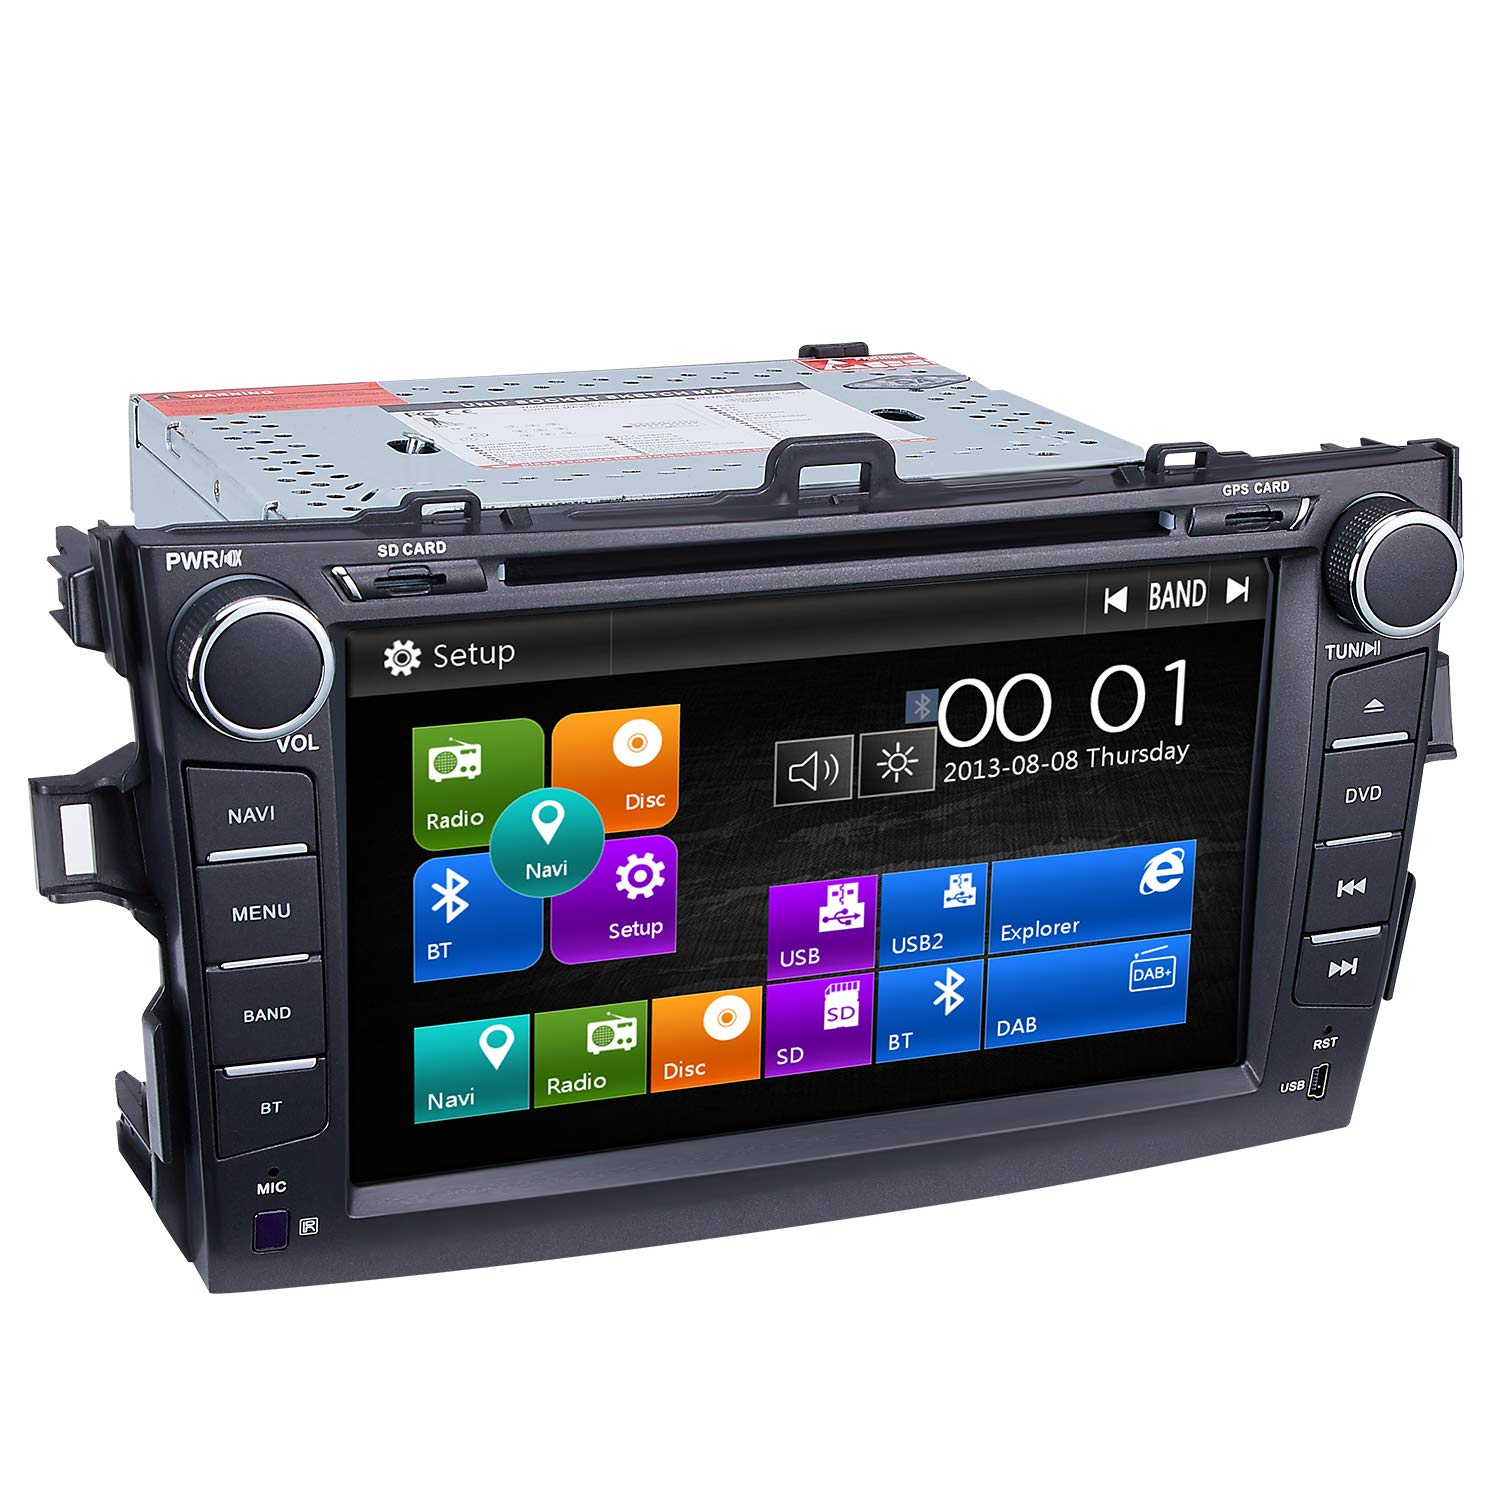 Corolla Car Stereo DVD Player-Double Din in-Dash, Multimedia Receiver with 8 Inches Touchscreen, Built-in Bluetooth, GPS Navi, USB Port, SD, AUX Input, Radio Receiver, Applicable Models: 2007-2011 (A) by Dagiton